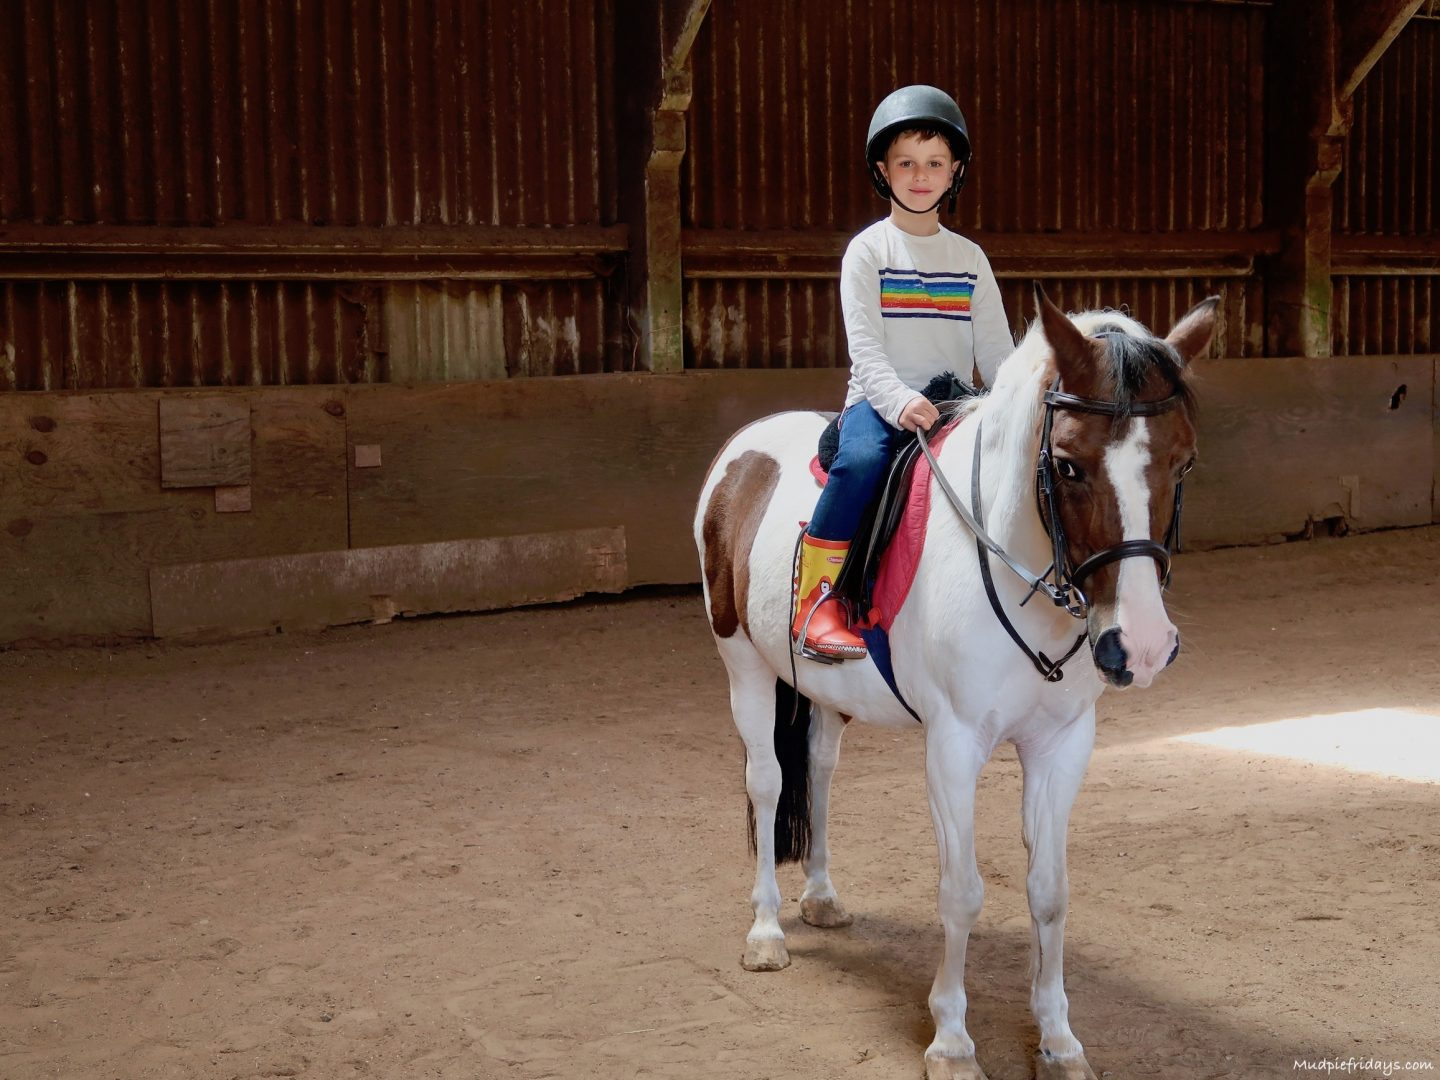 Monkey's first horse riding lesson